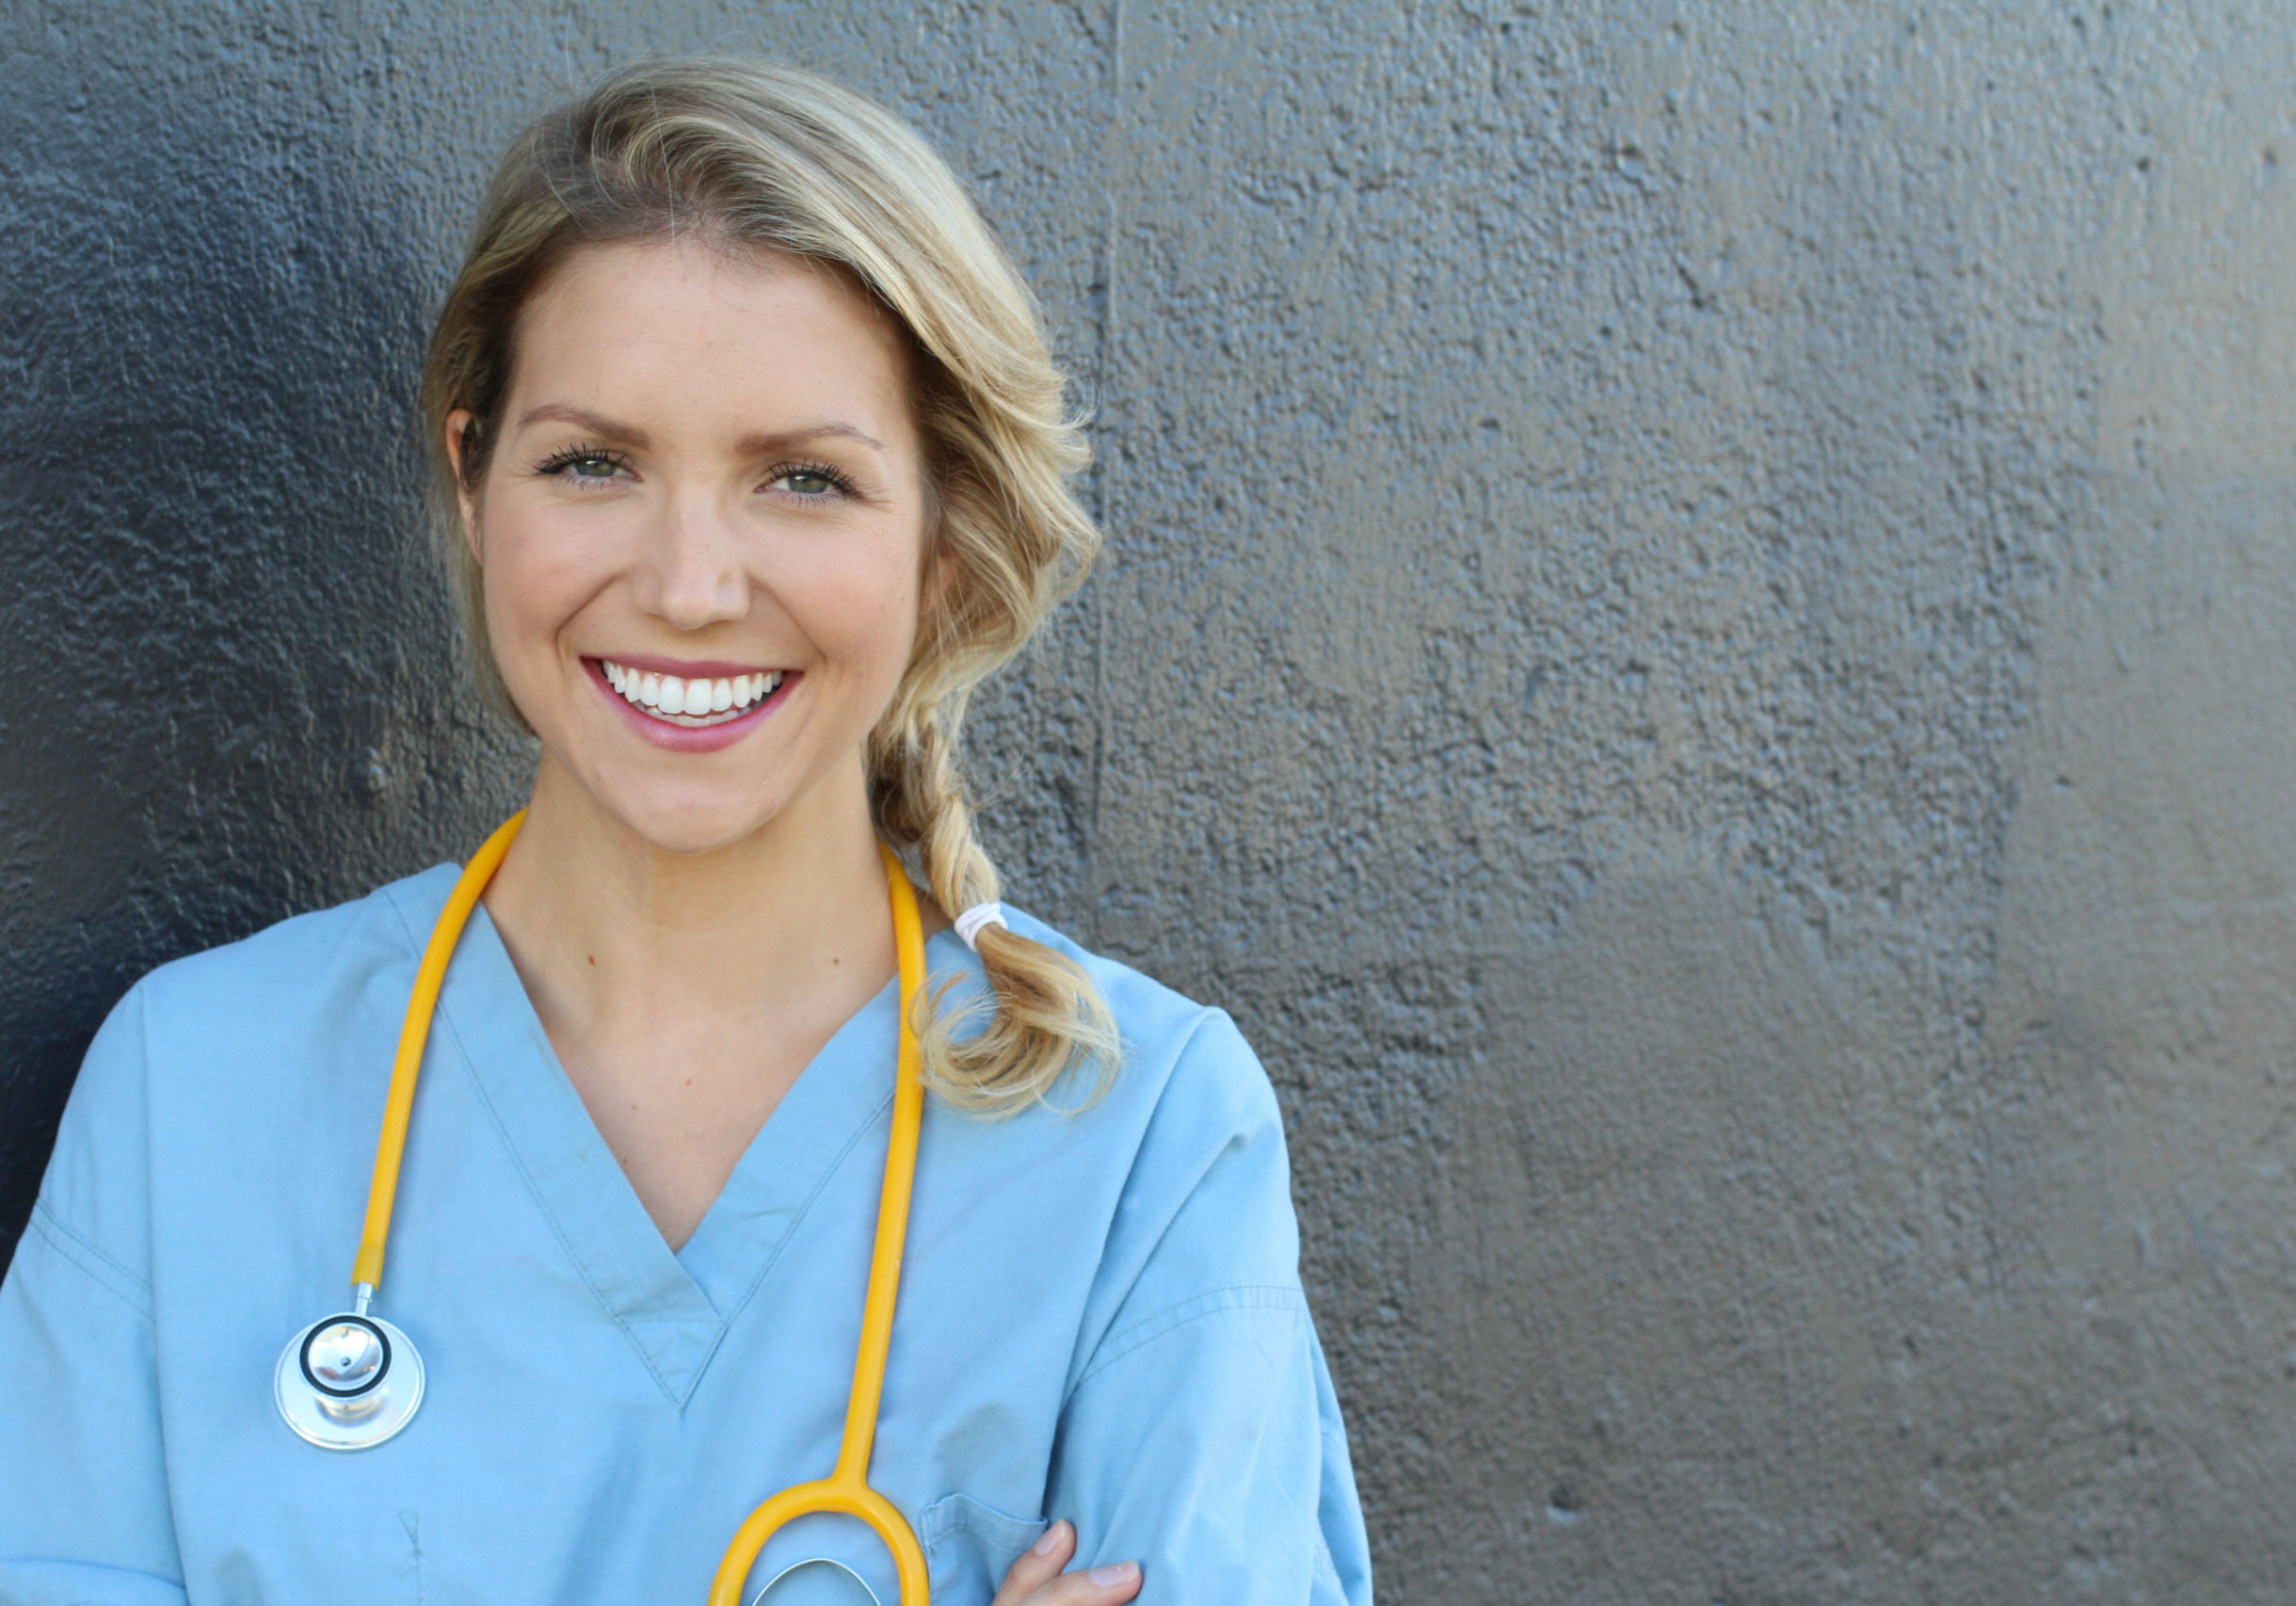 Nurse with long blonde hair and a stethoscope in a uniform smiling at the camera.